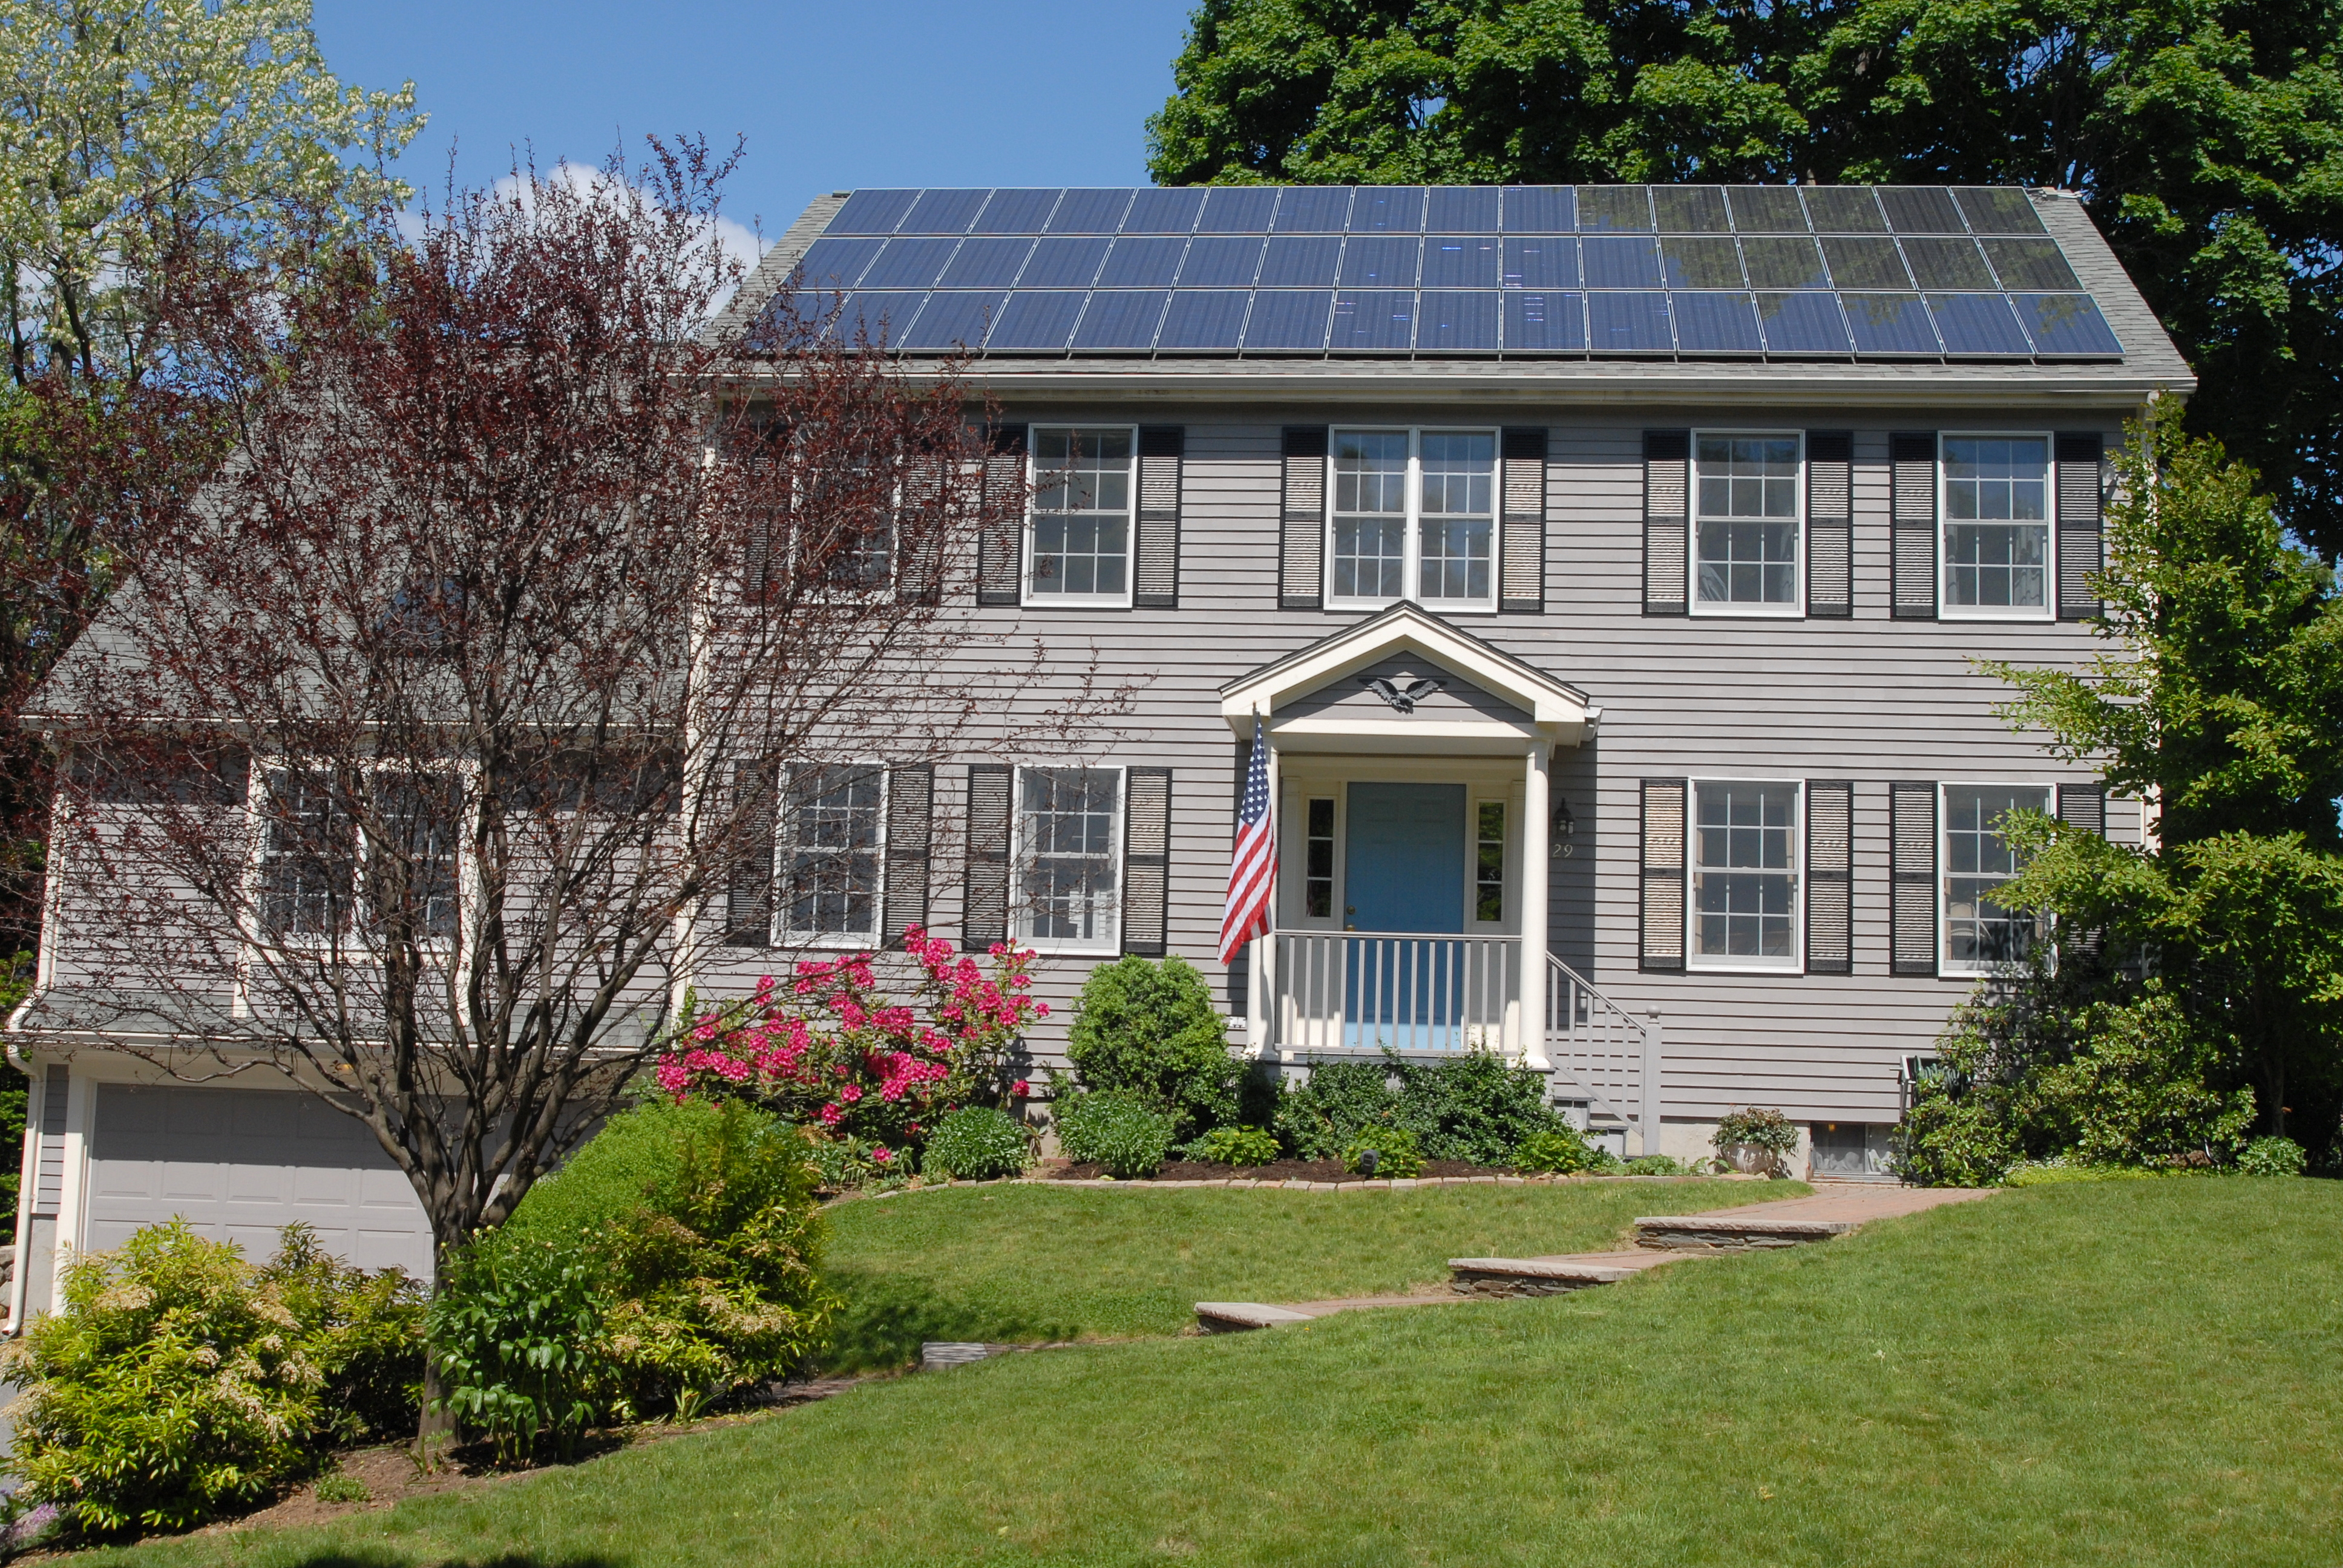 Solar_panels_on_house_roof